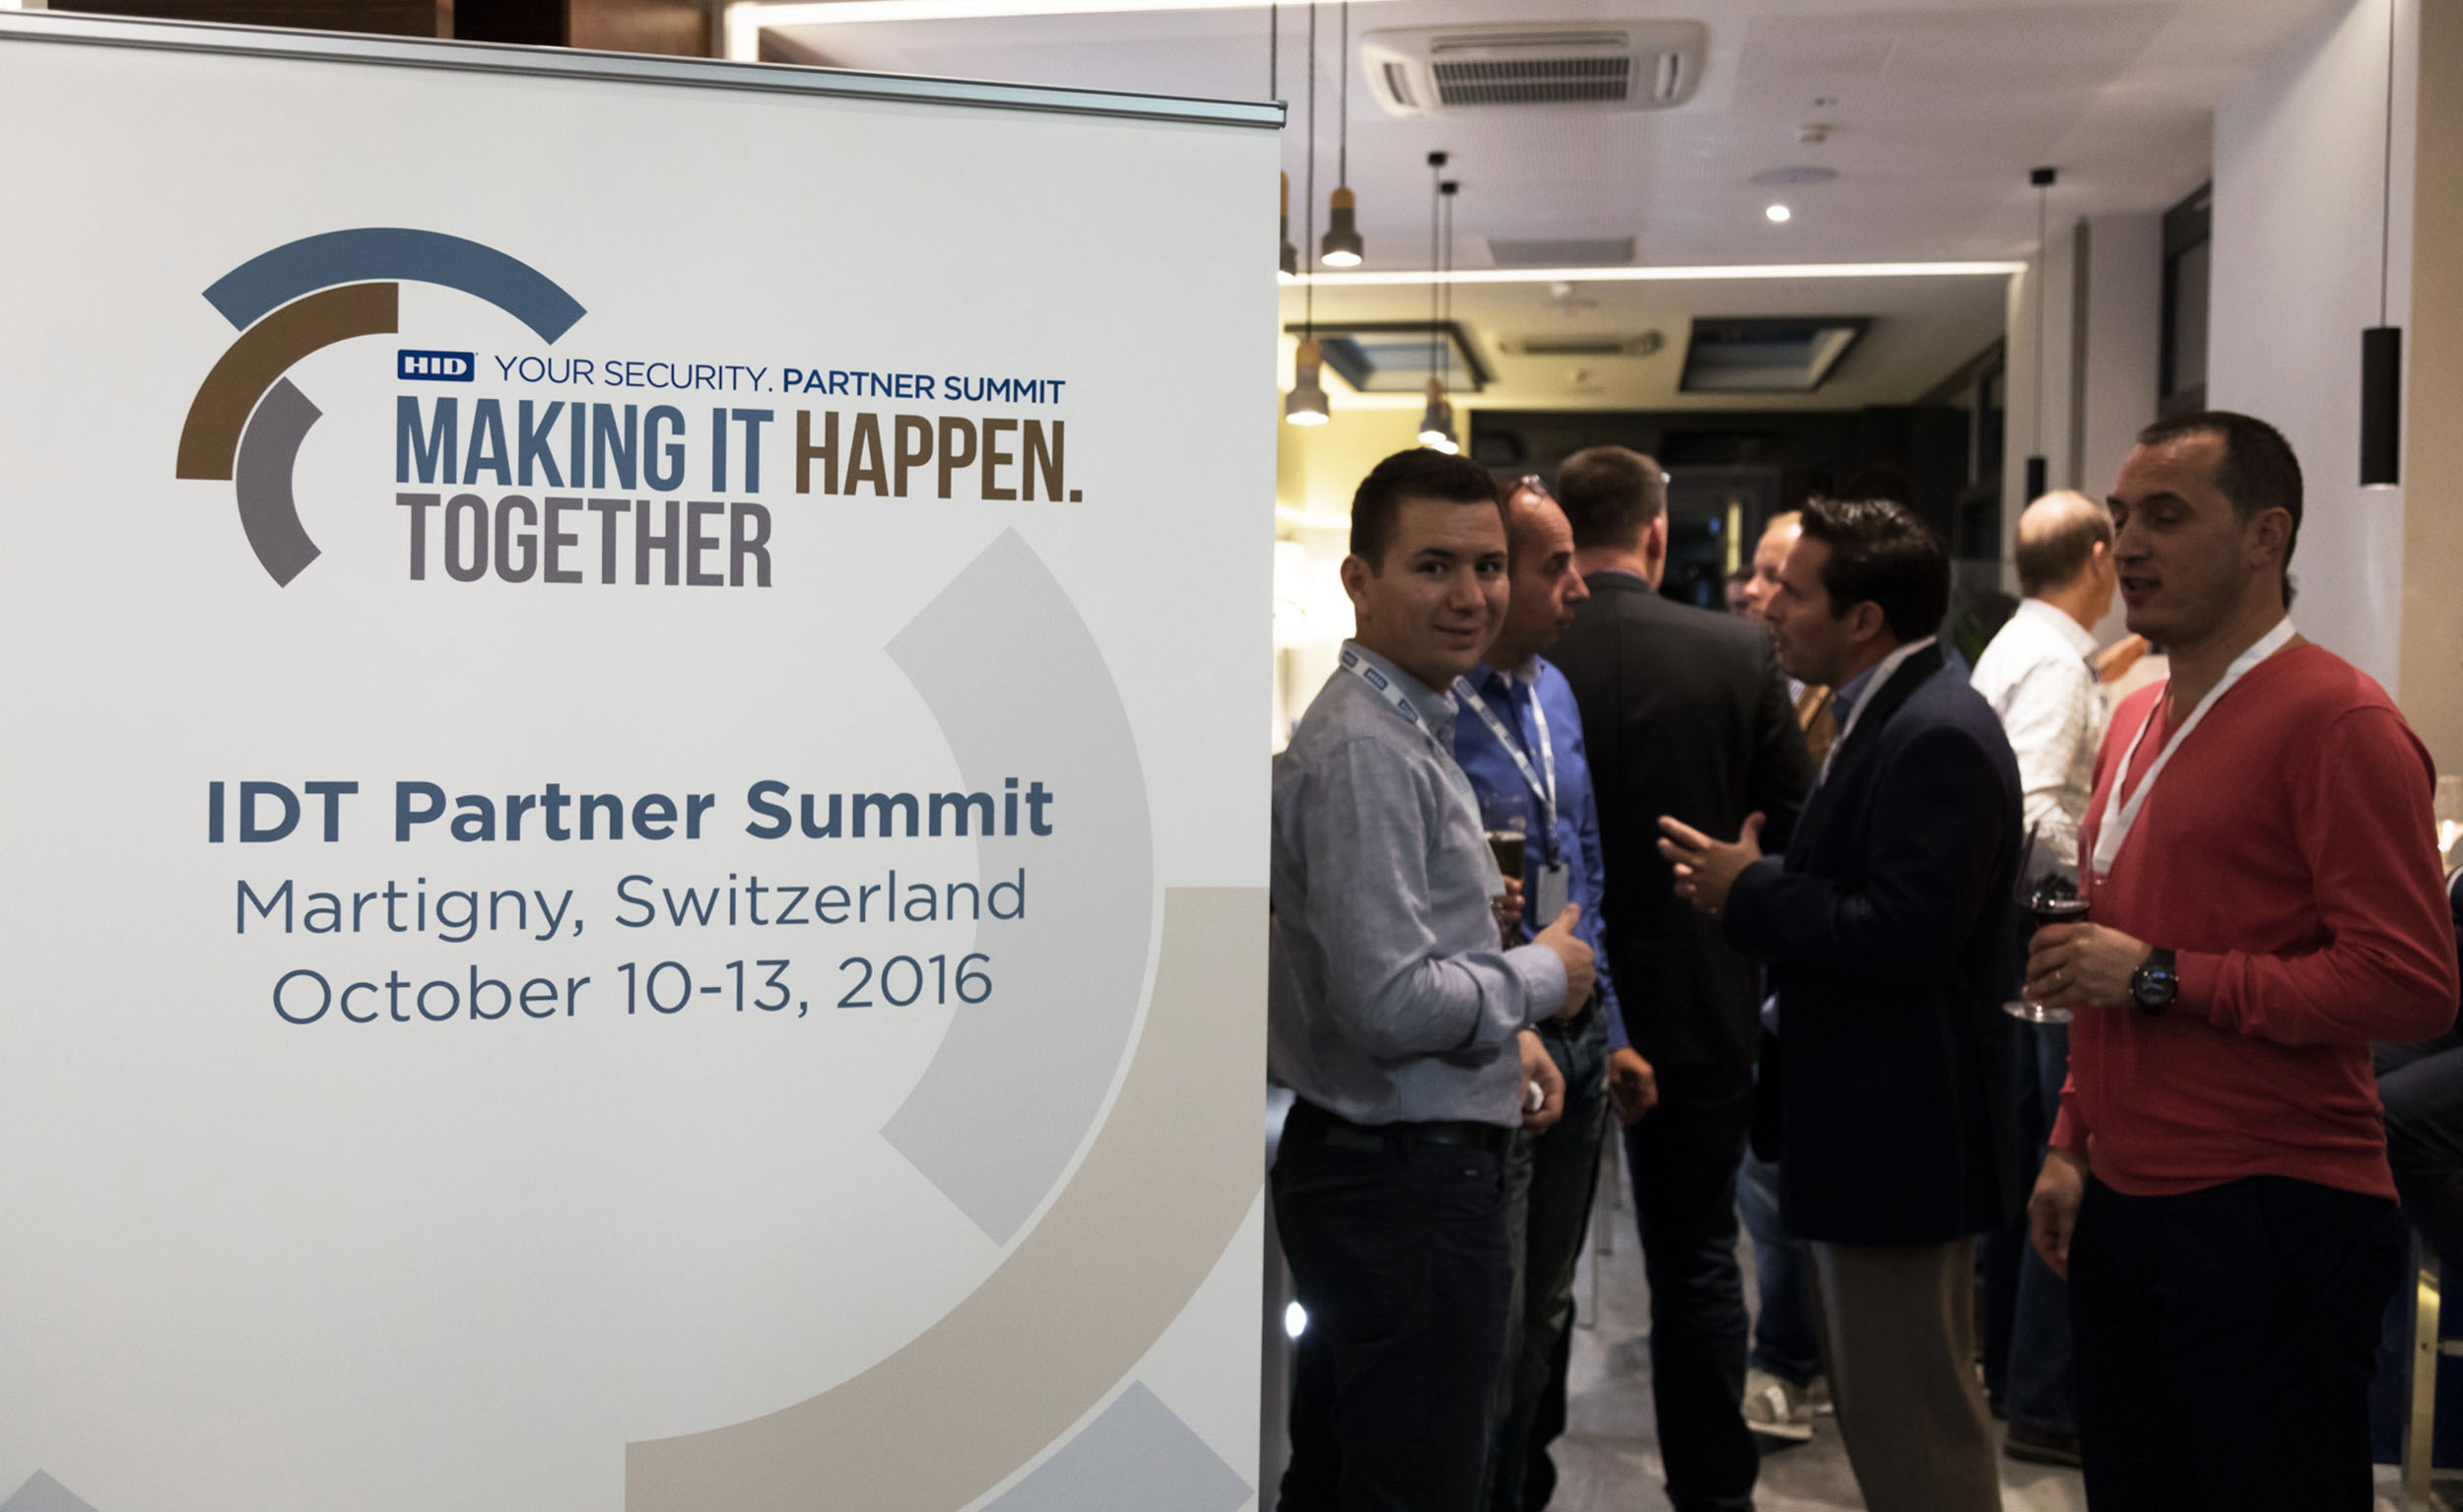 idt-partner-summit-2016